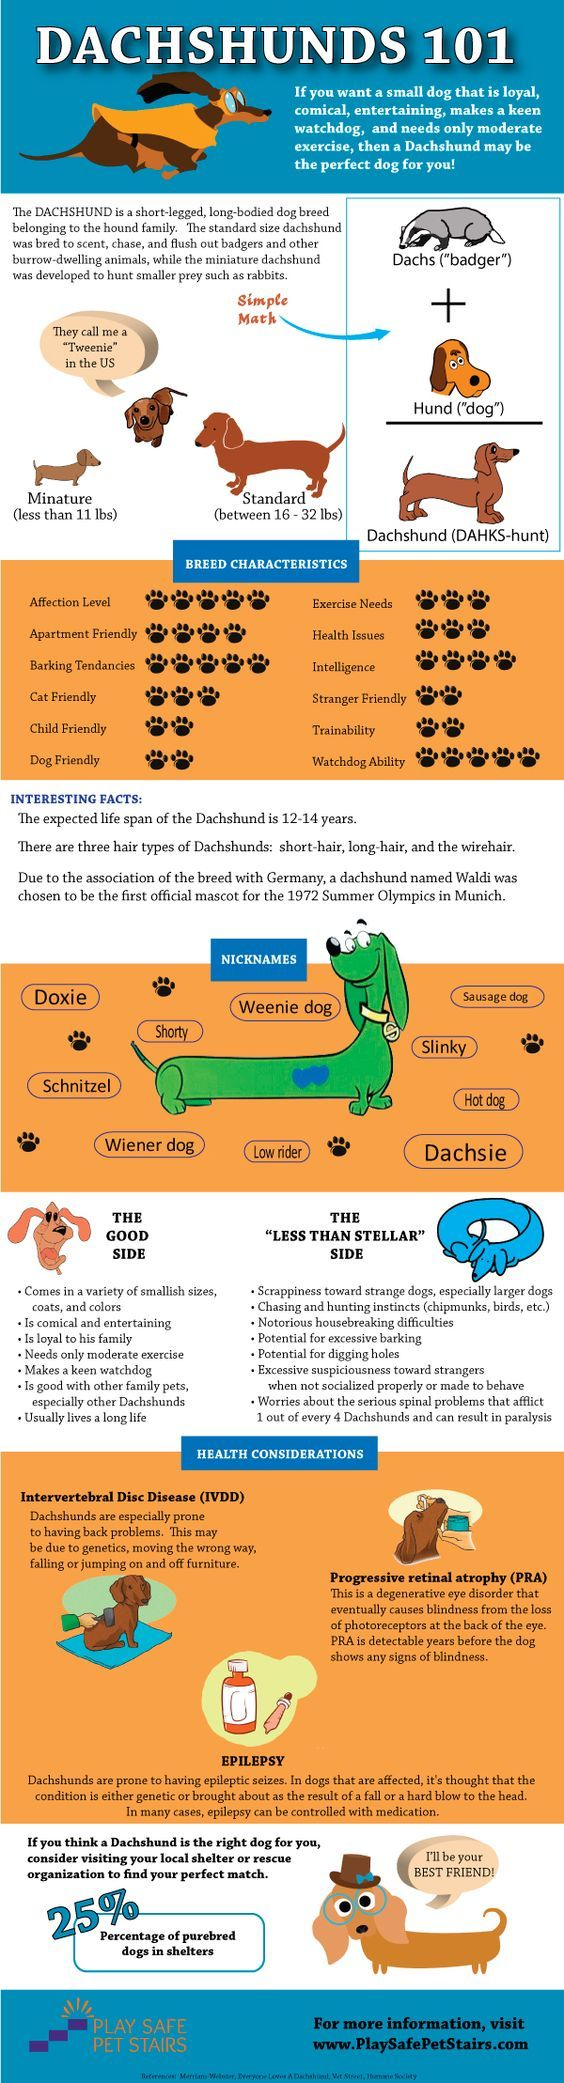 "Think a Dachshund is the perfect dog for you? This Dachshunds 101 infographic can help you decide! And, if you do decide a #Dachshund is the perfect pet for your family, make sure to get them their very own #dogstairs so they can reach you on the couch or bed (they call them ""low riders"" for a reason)!:"